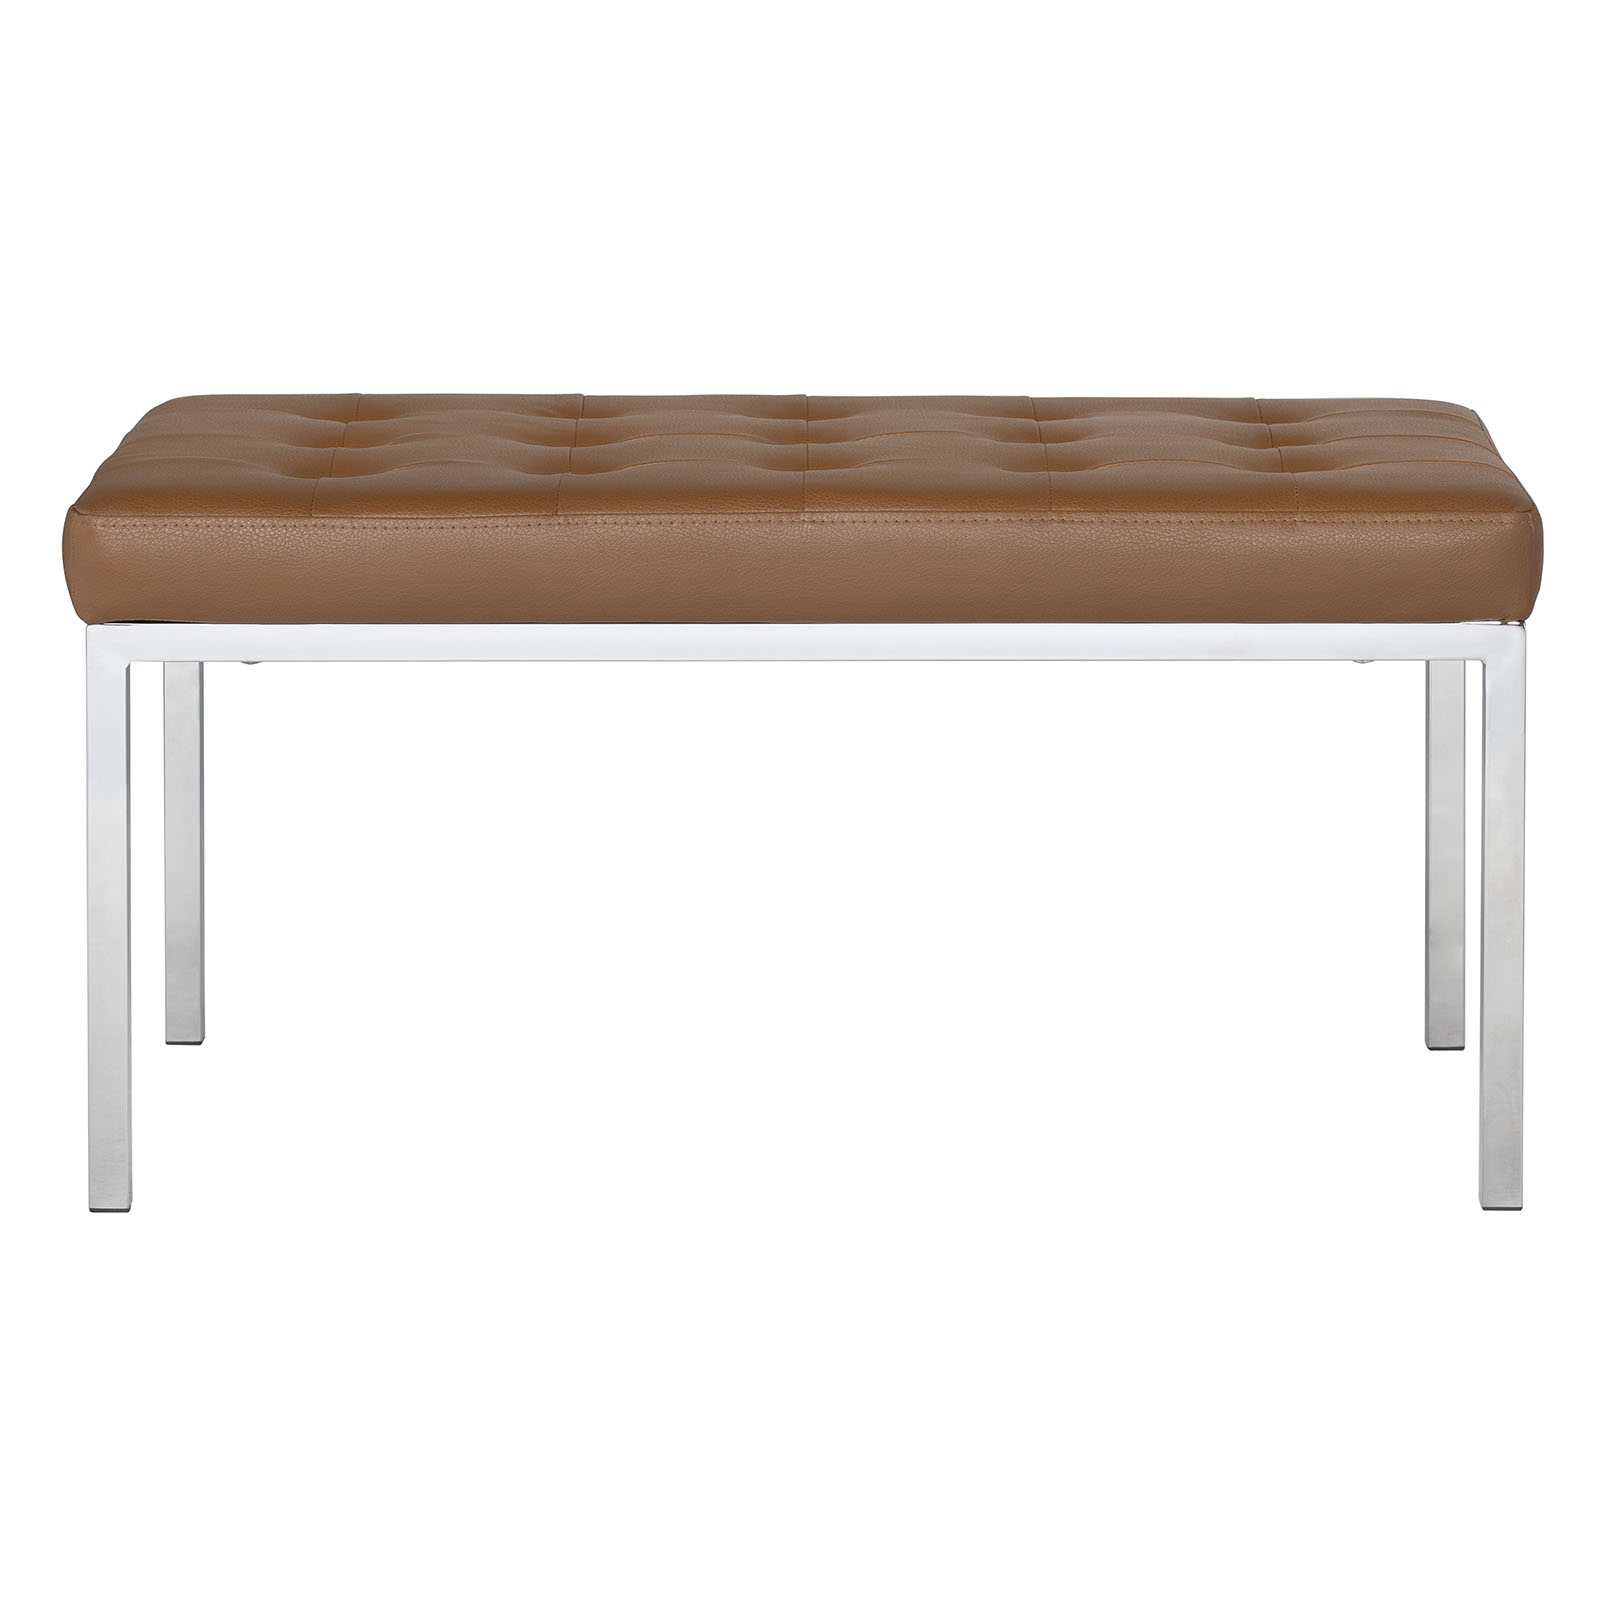 72039 Lintel 35 Inch Bench front